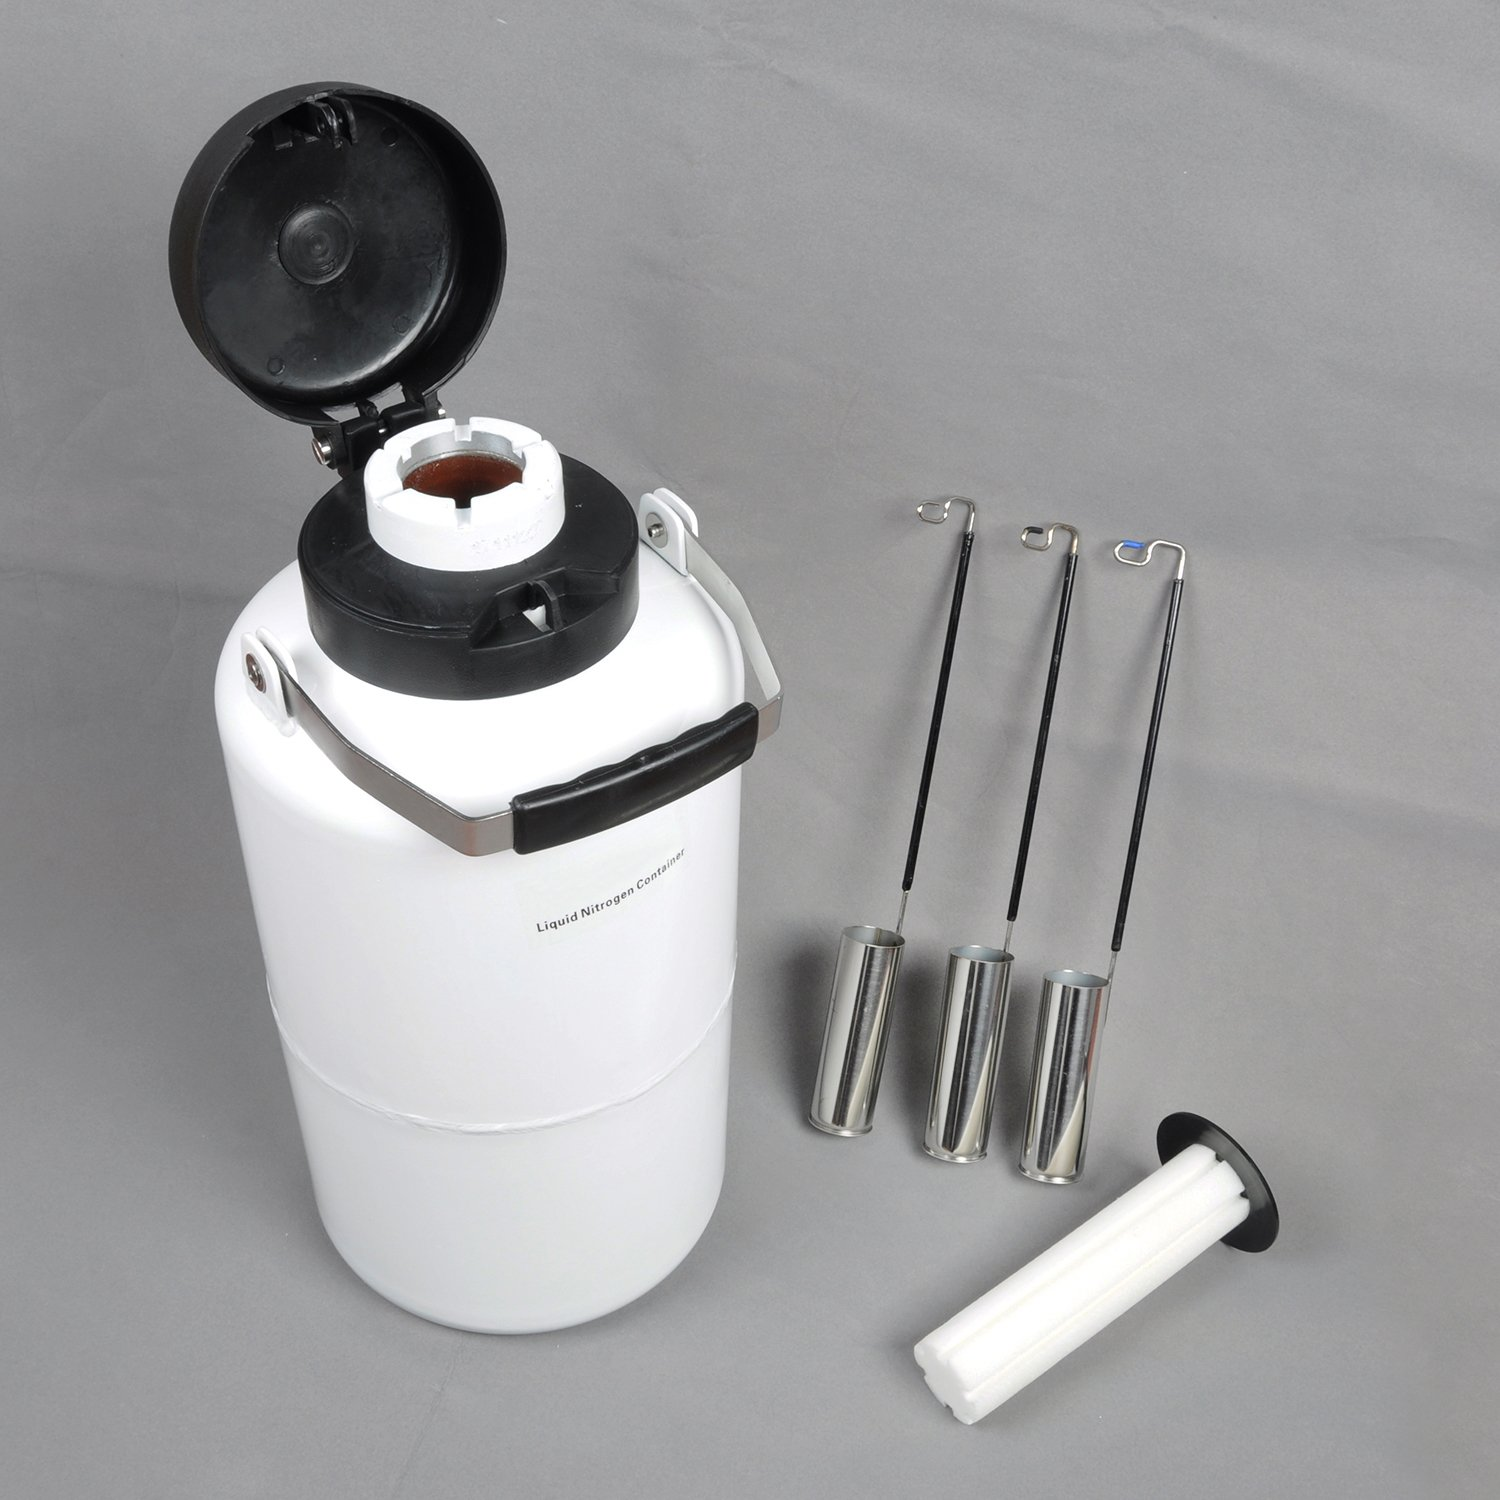 Rhegeneshop Manufacturer direct delivery New 3.15 Ranking TOP2 L Cryogenic Tank Container Liquid Nitrogen